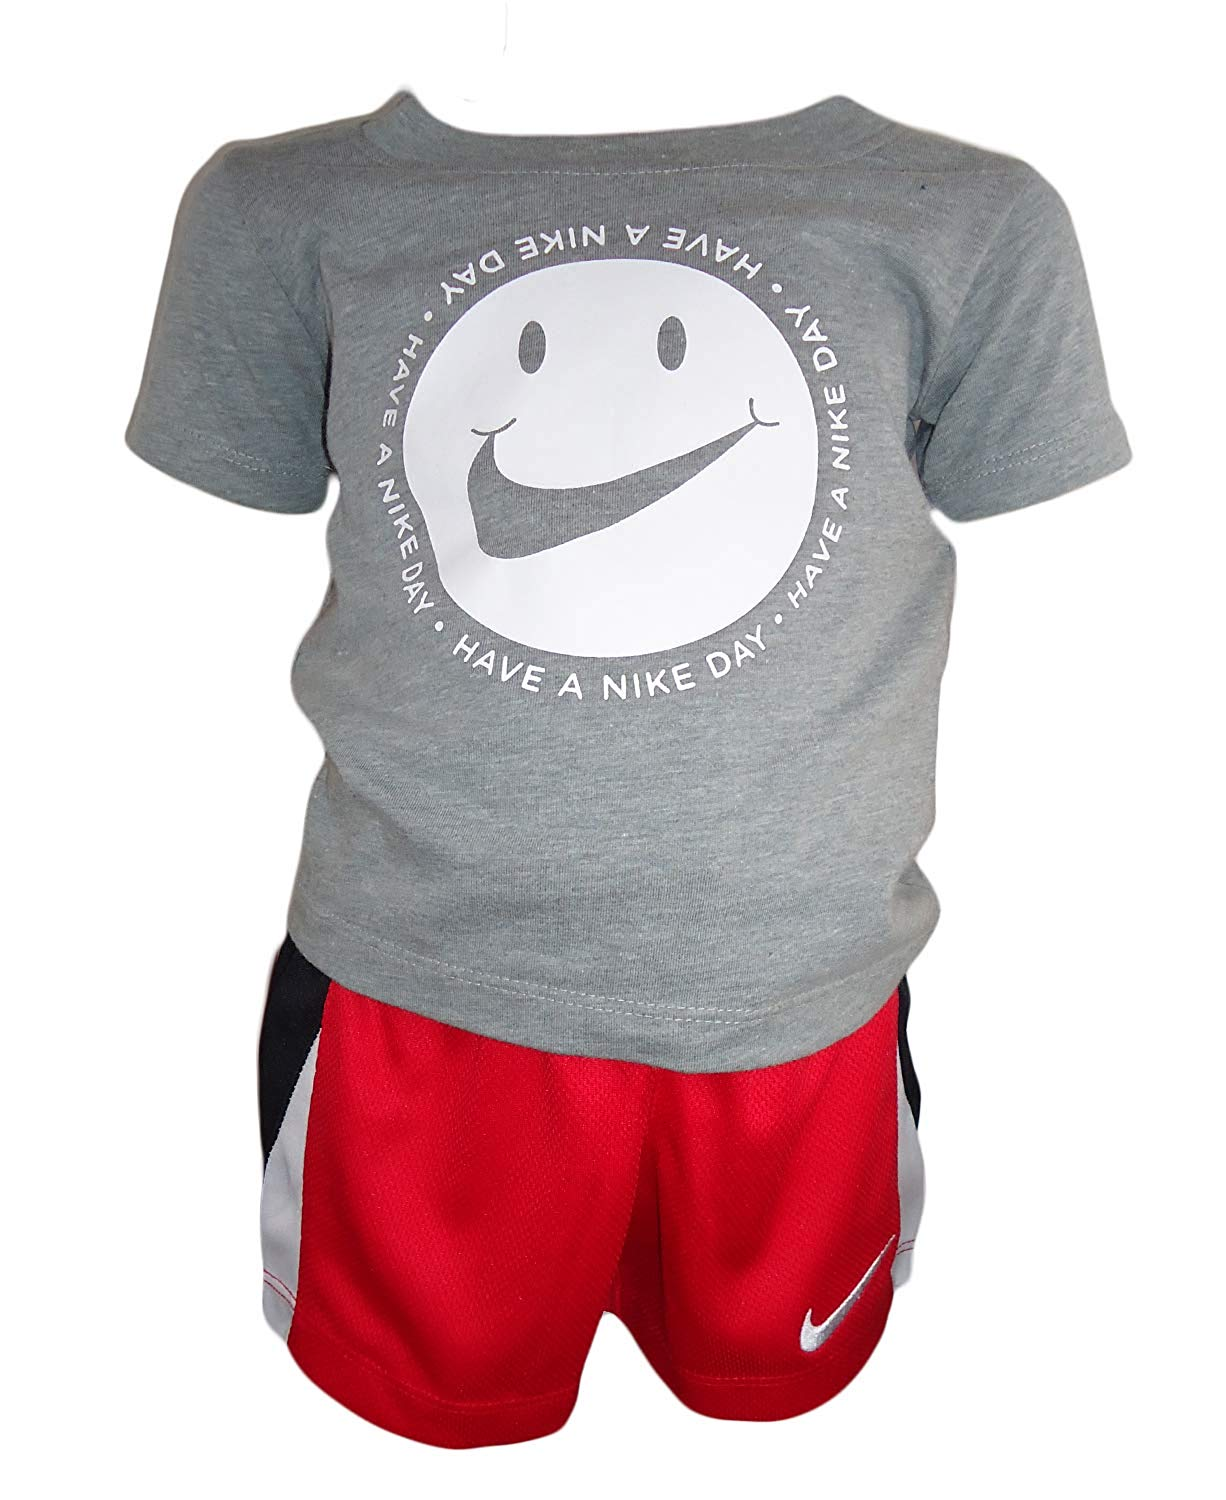 aa703bb99 Baby Boys:Nike 2-Pc. Active Wear Top & Pants Set - Baby Clothes ...